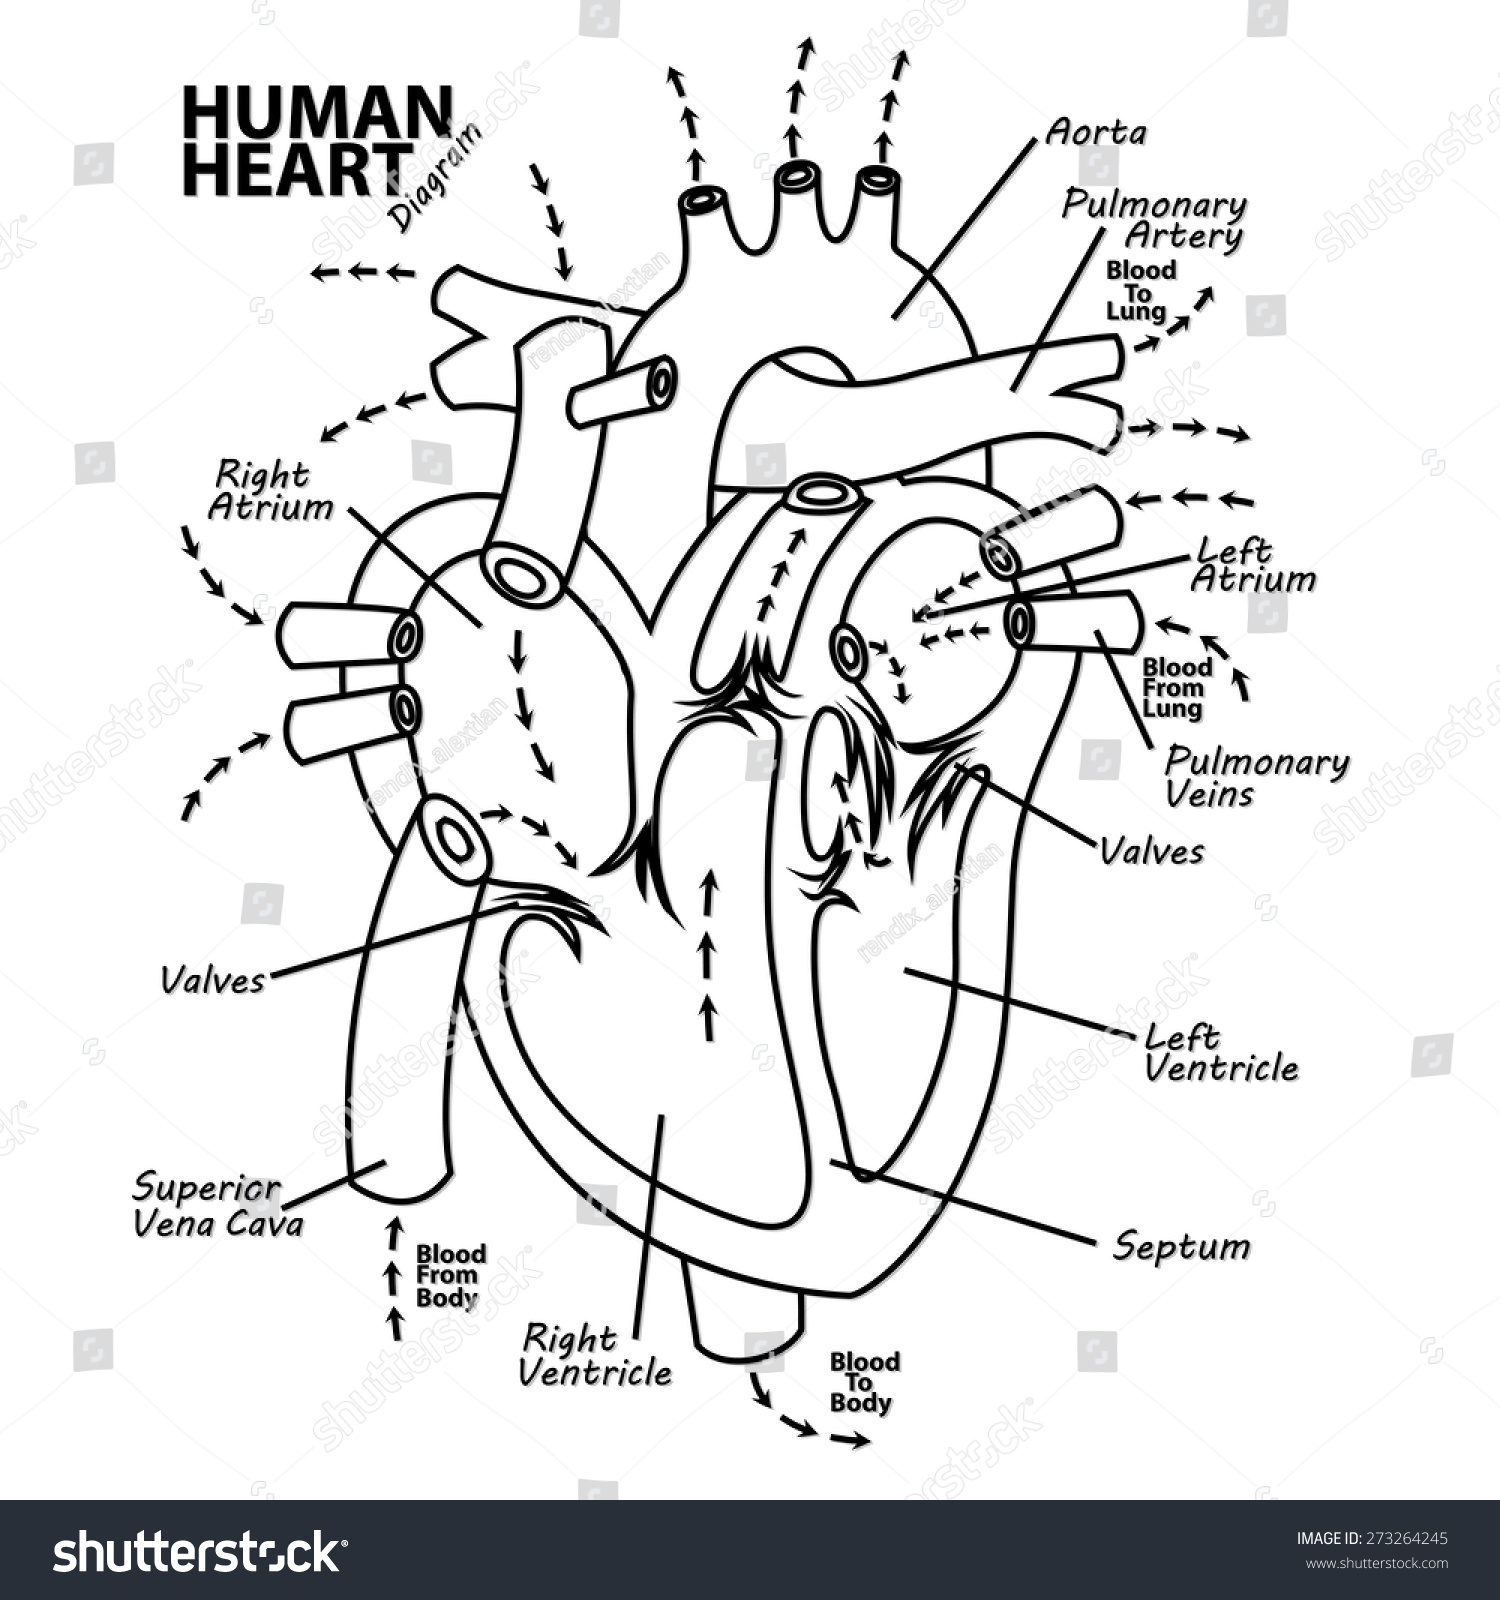 Human Heart Diagram Anatomy Stock Vector